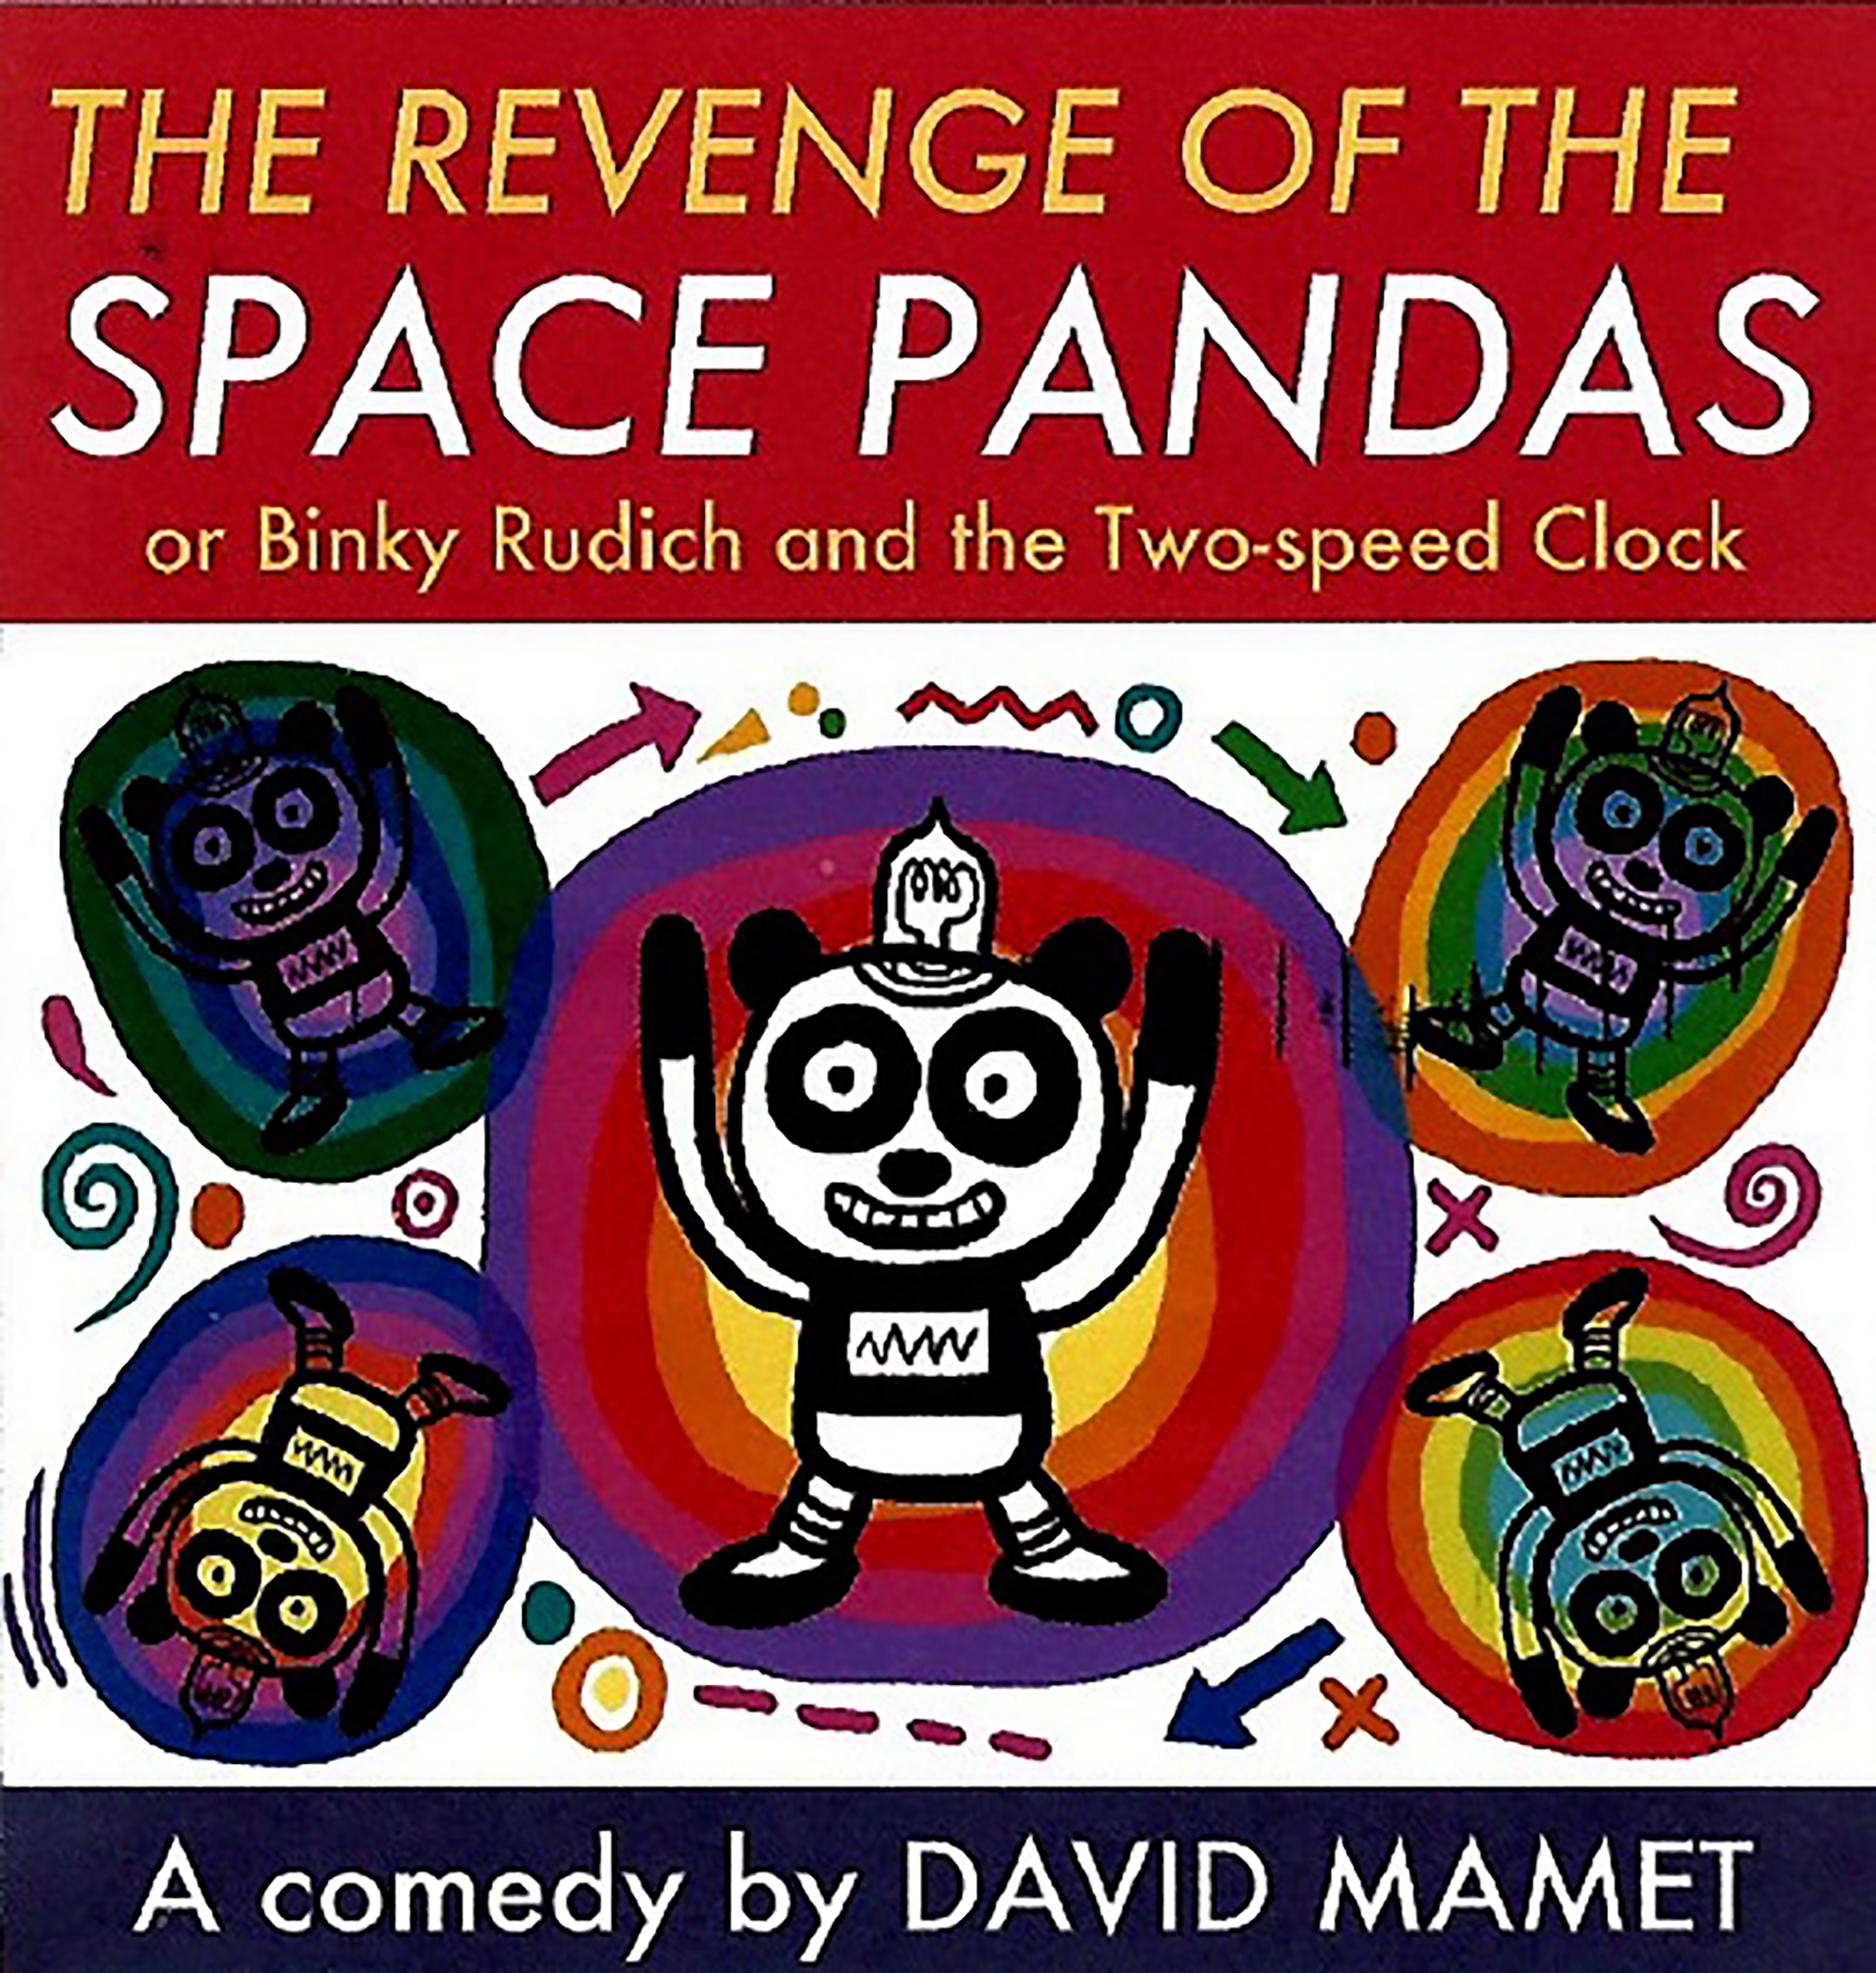 The Revenge of the Space Pandas